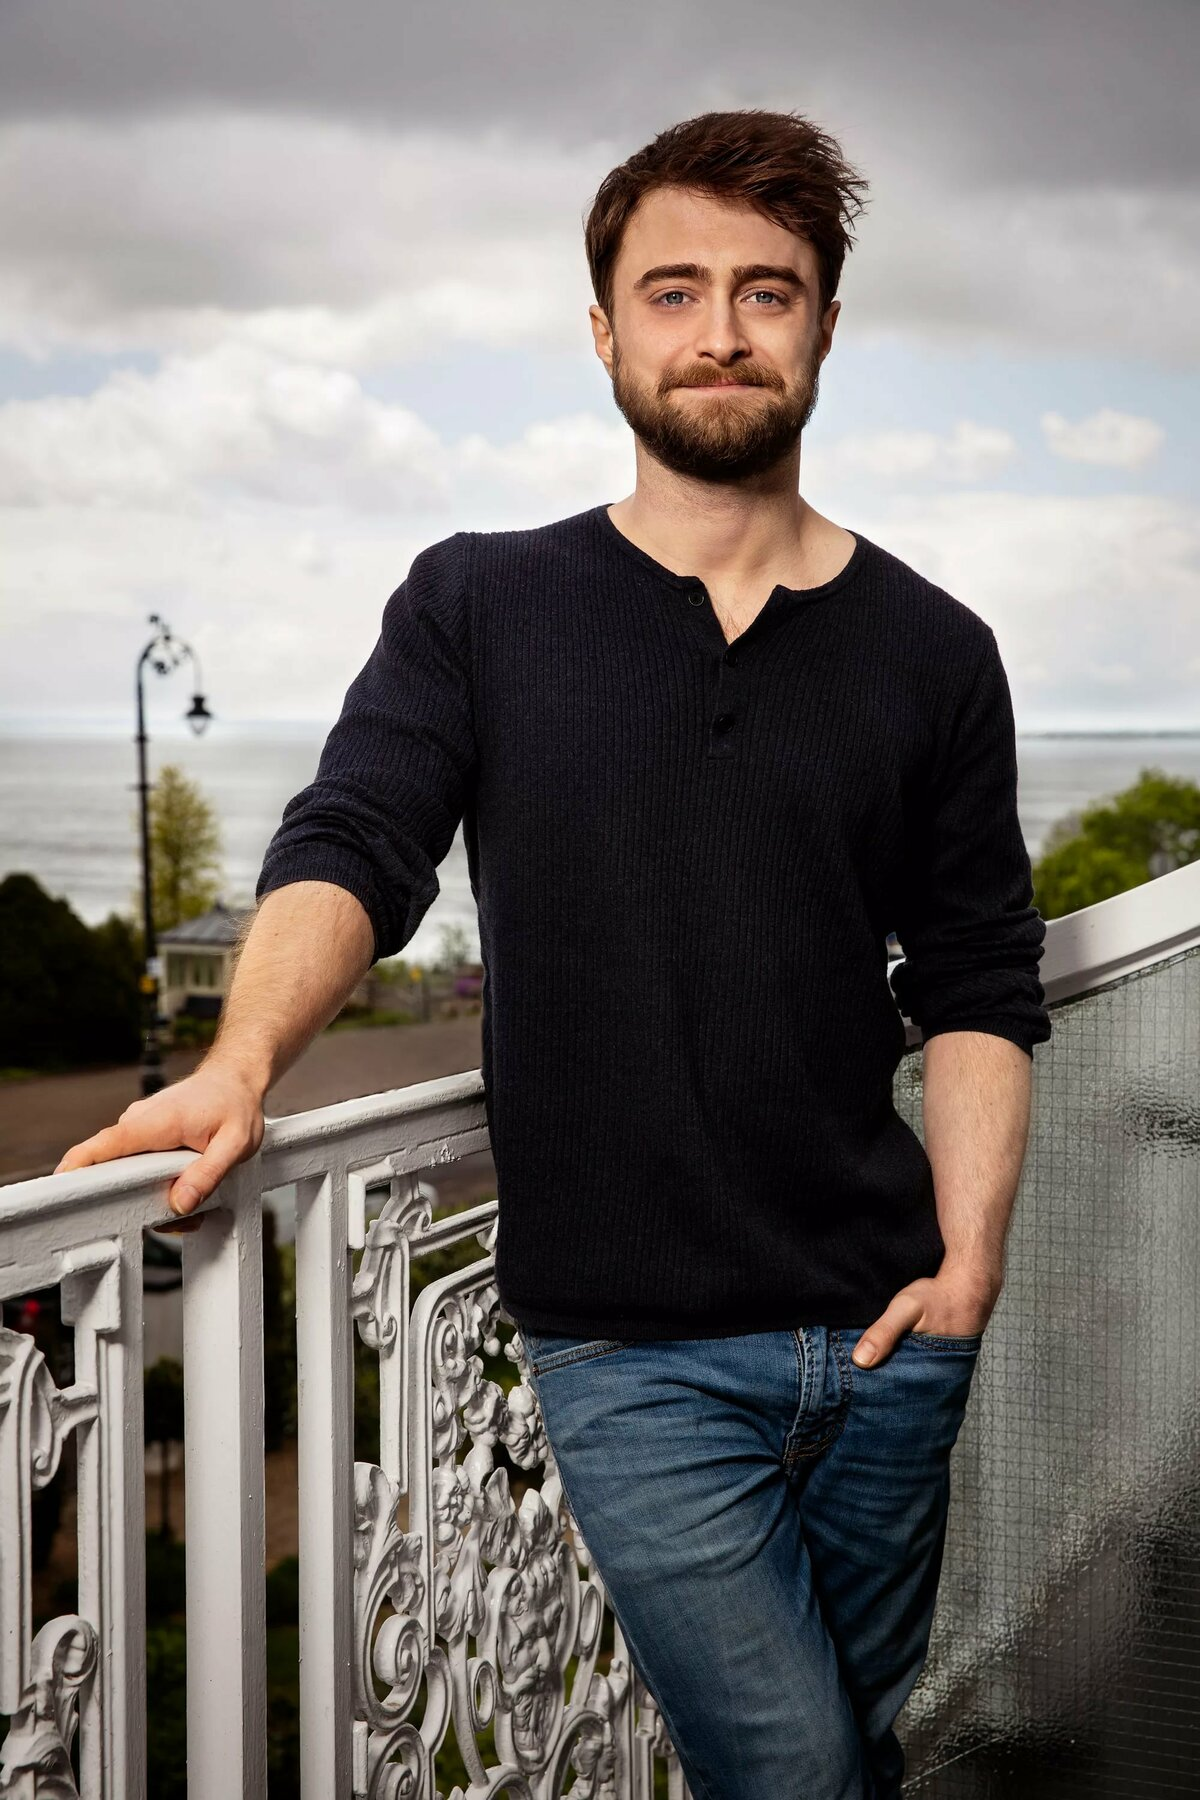 daniel-radcliffe-with-his-shirt-off